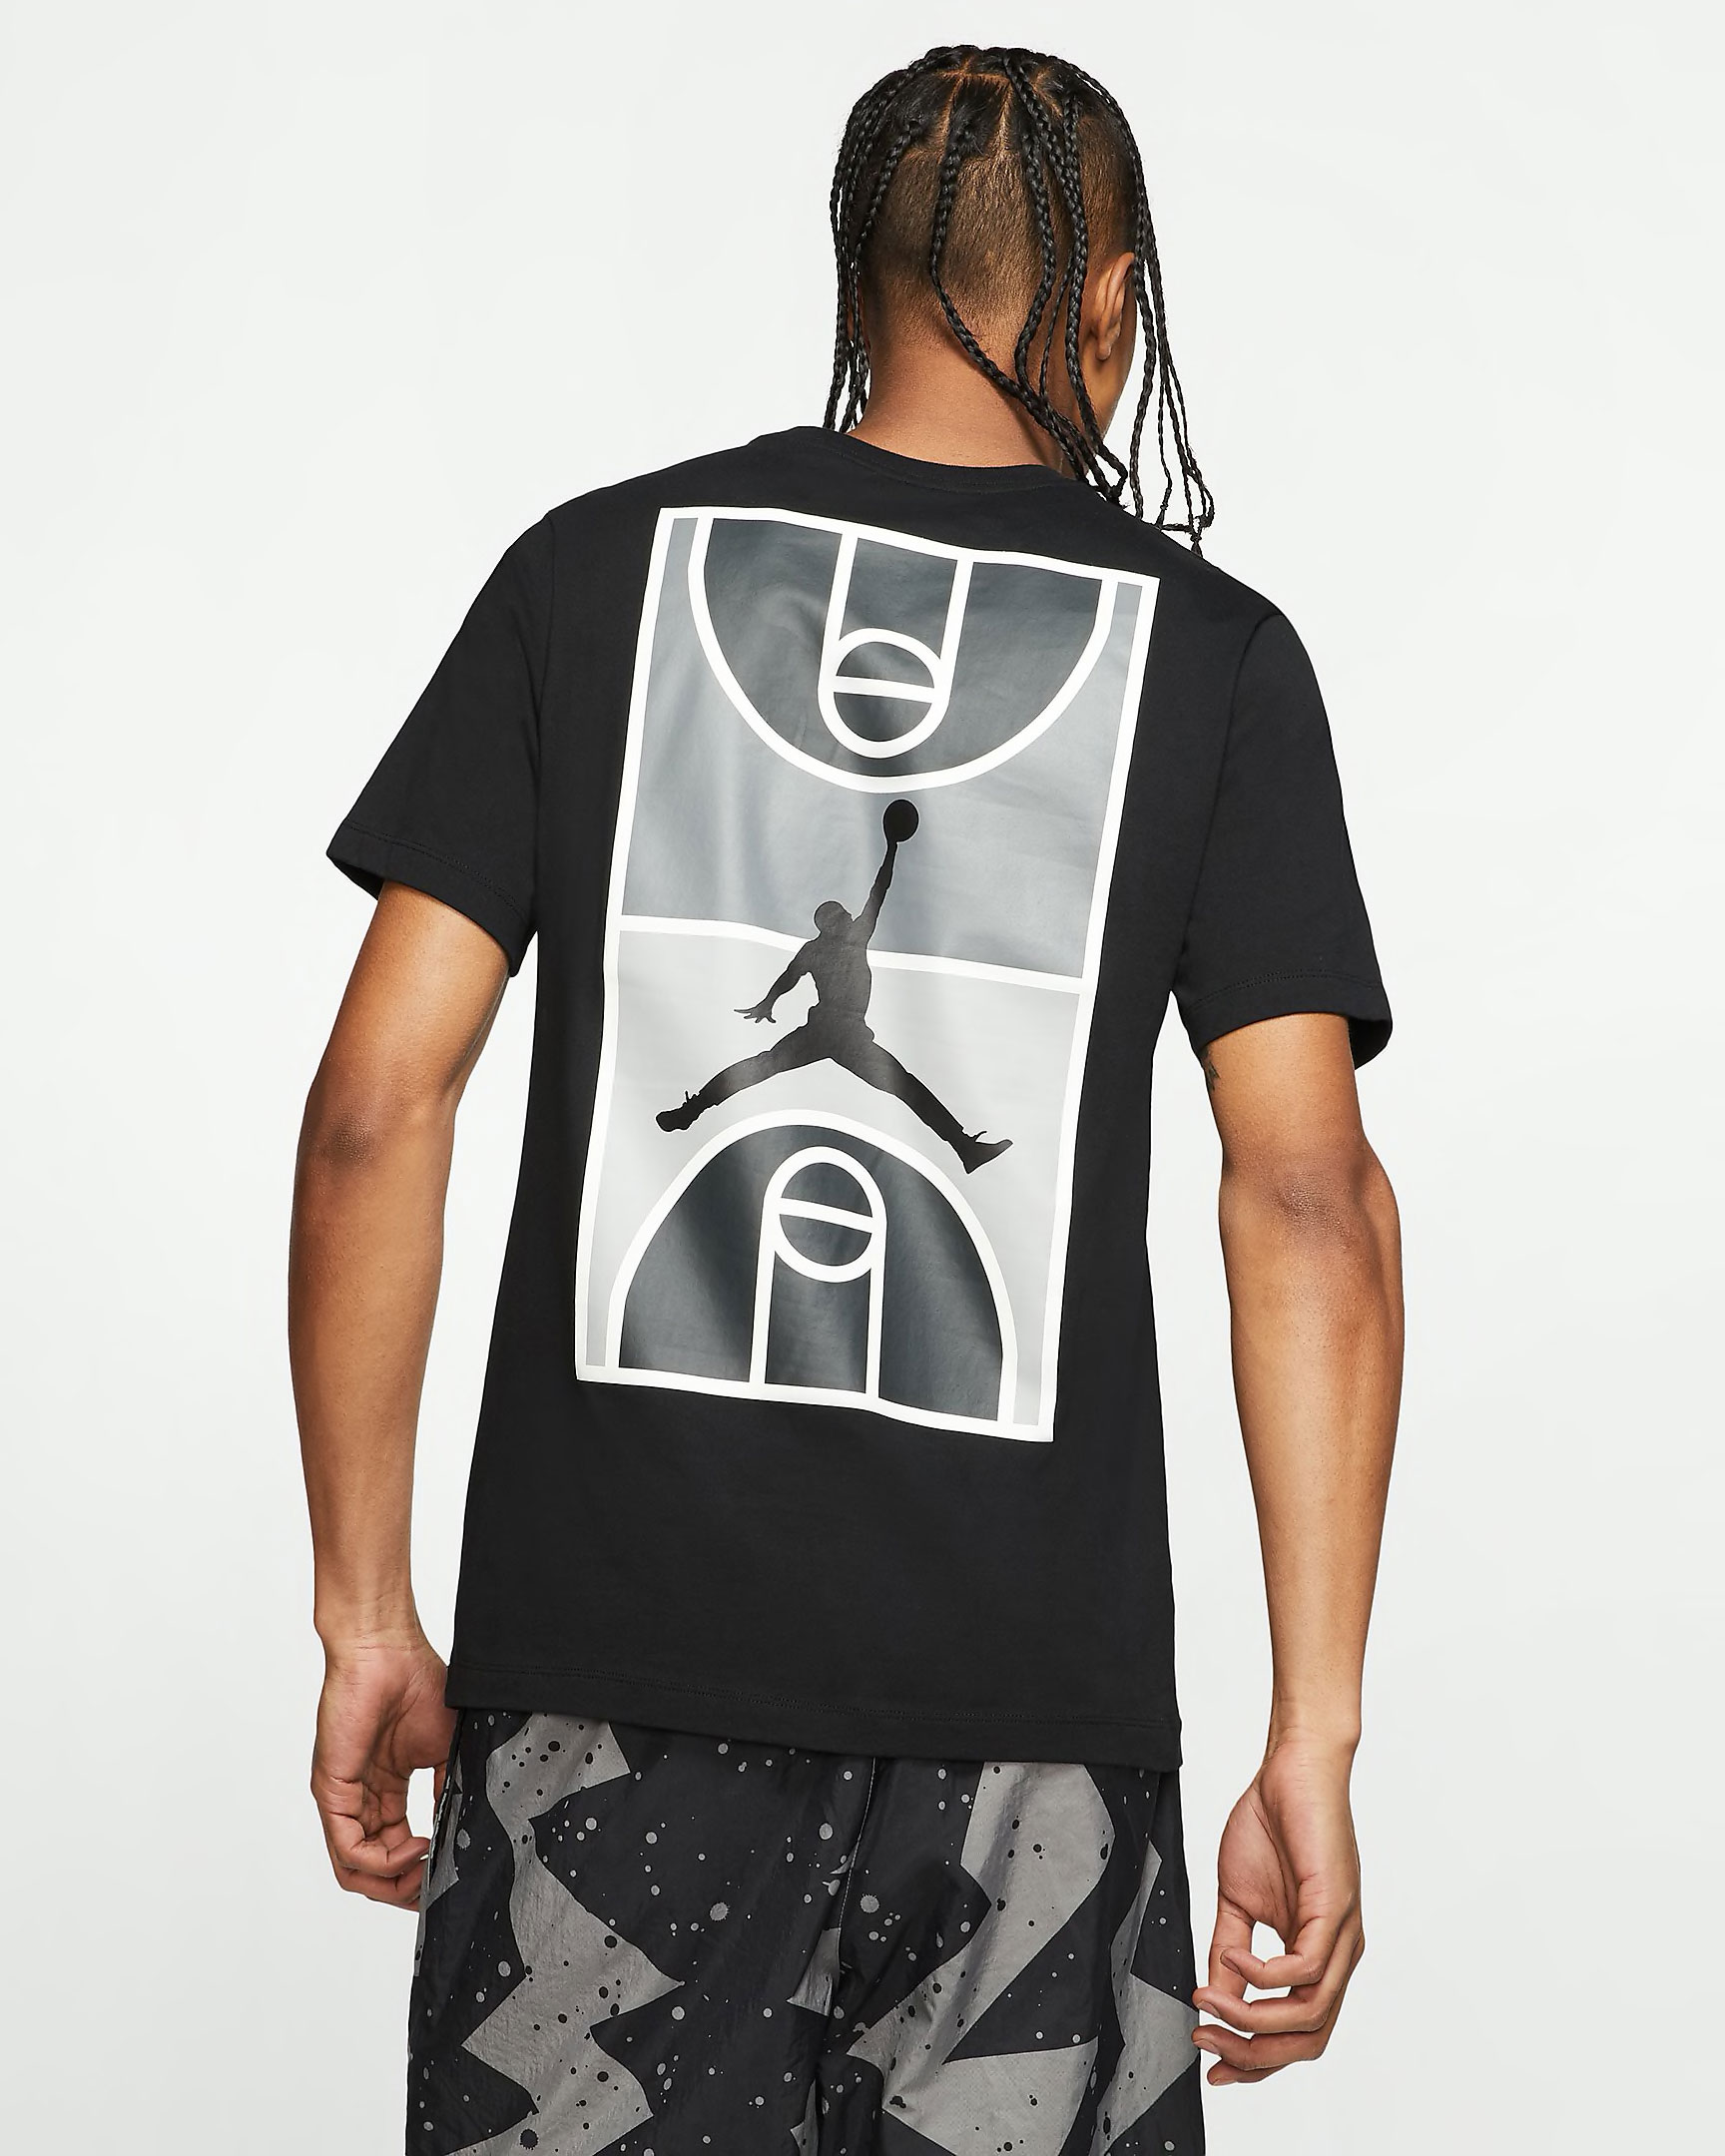 jordan-5-fire-red-2020-poolside-shirt-9